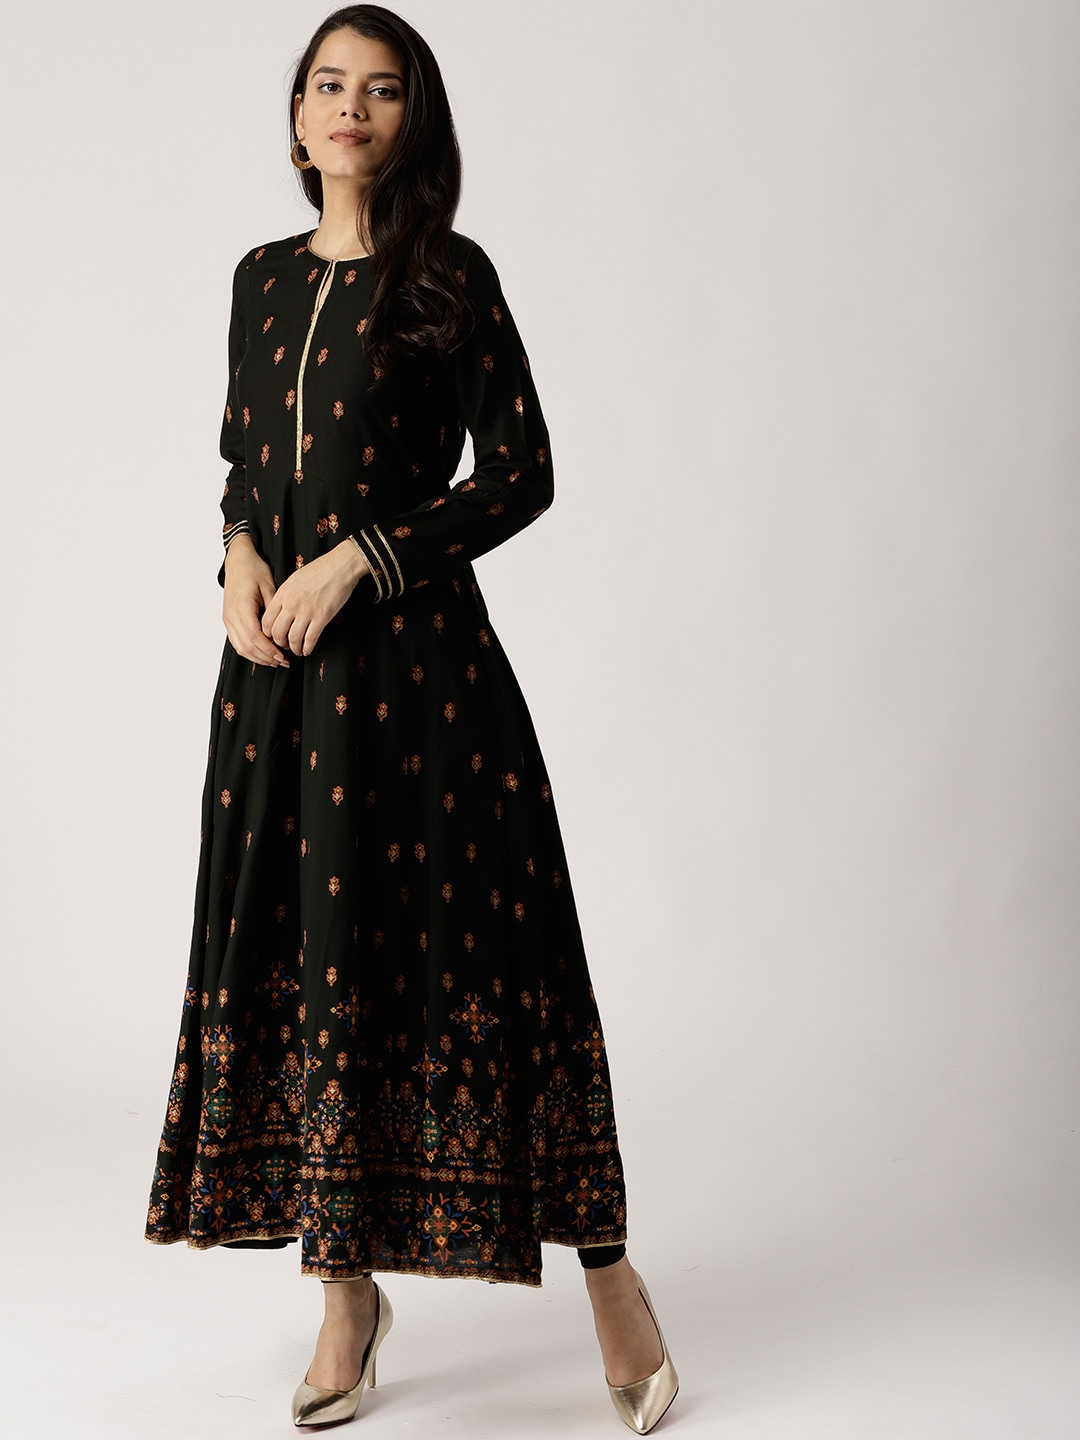 7831e1c2759 Libas - Exclusive Libas Online Store in India at Myntra